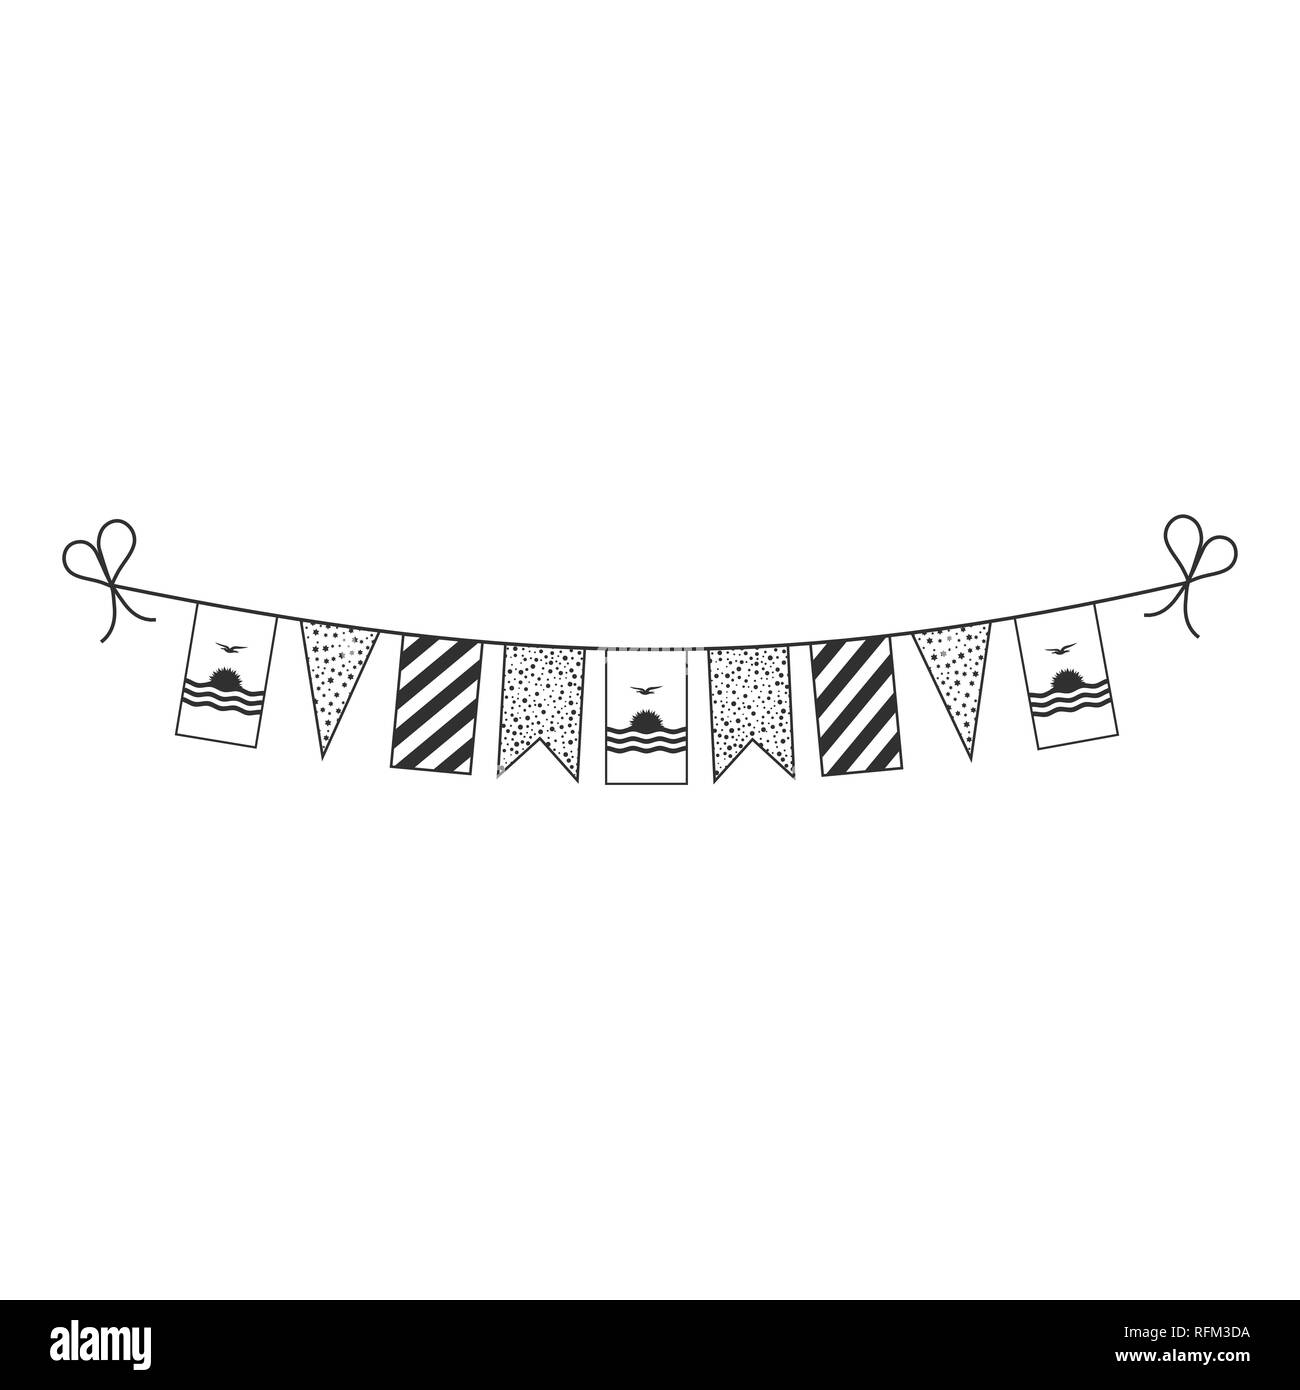 Decorations bunting flags for Kiribati national day holiday in black outline flat design. Independence day or National day holiday concept. - Stock Image